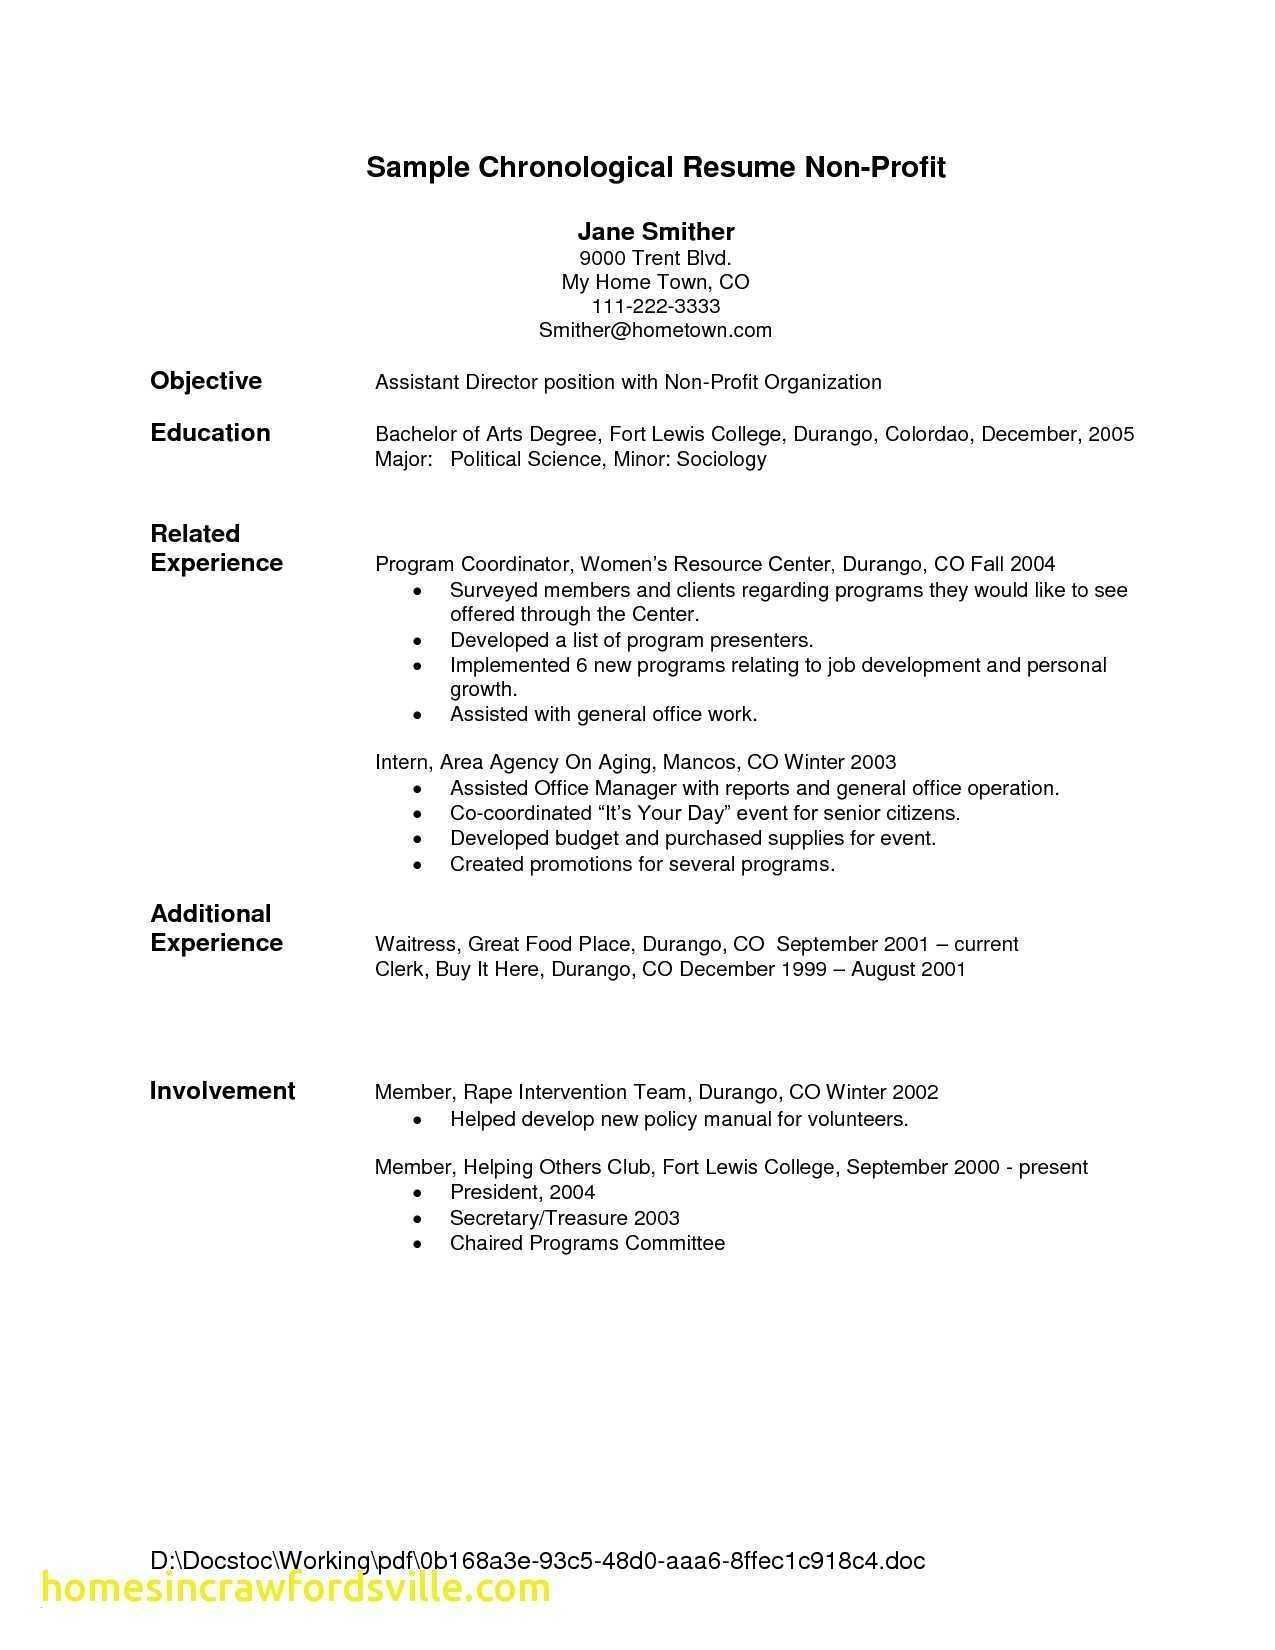 Office Manager Description for Resume - Babysitter Resume Skills New Beautiful Nanny Duties Resume Fresh